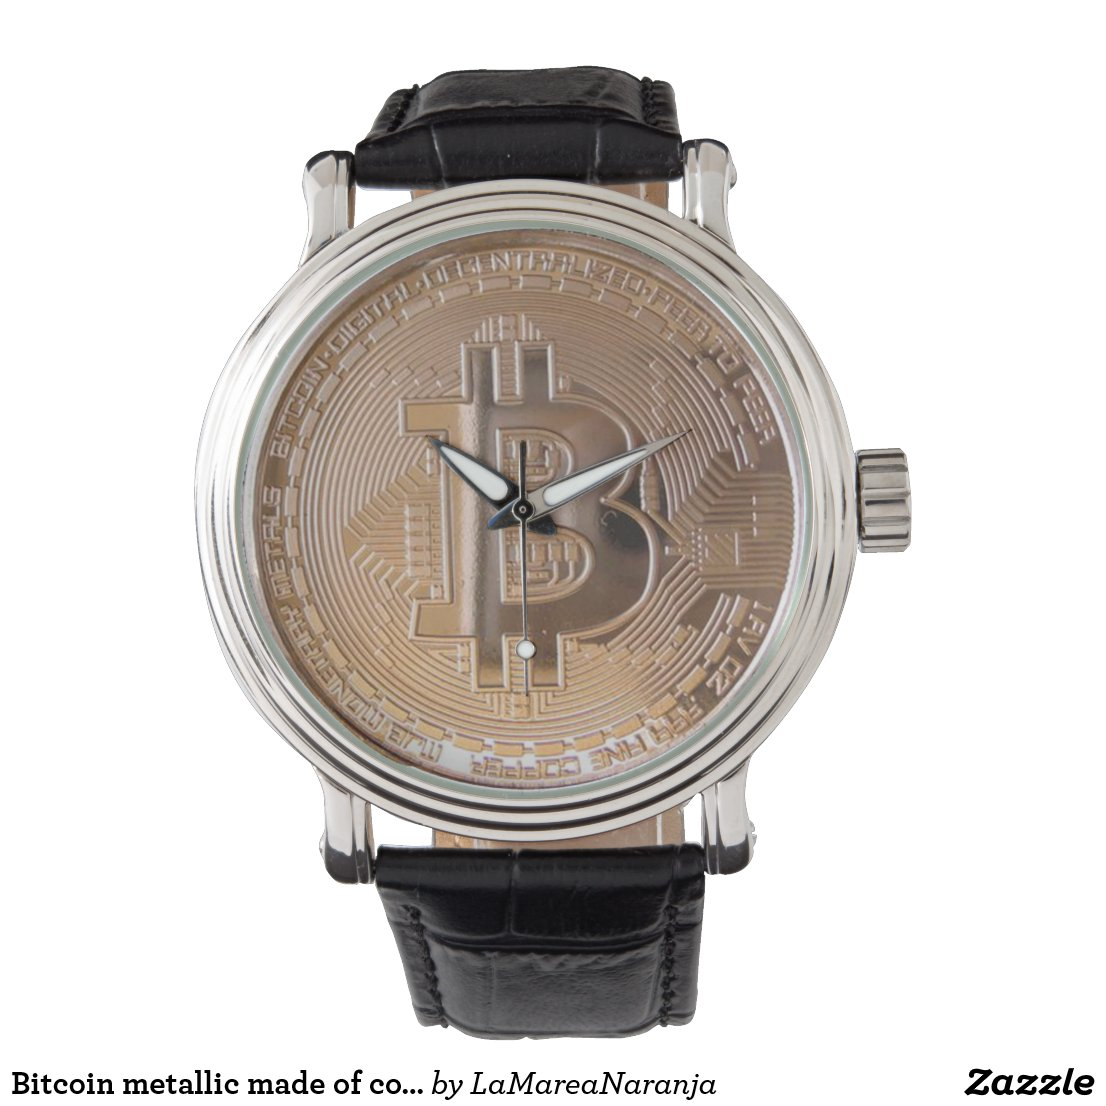 Bitcoin metallic made of to copper. M1 Wrist Watch